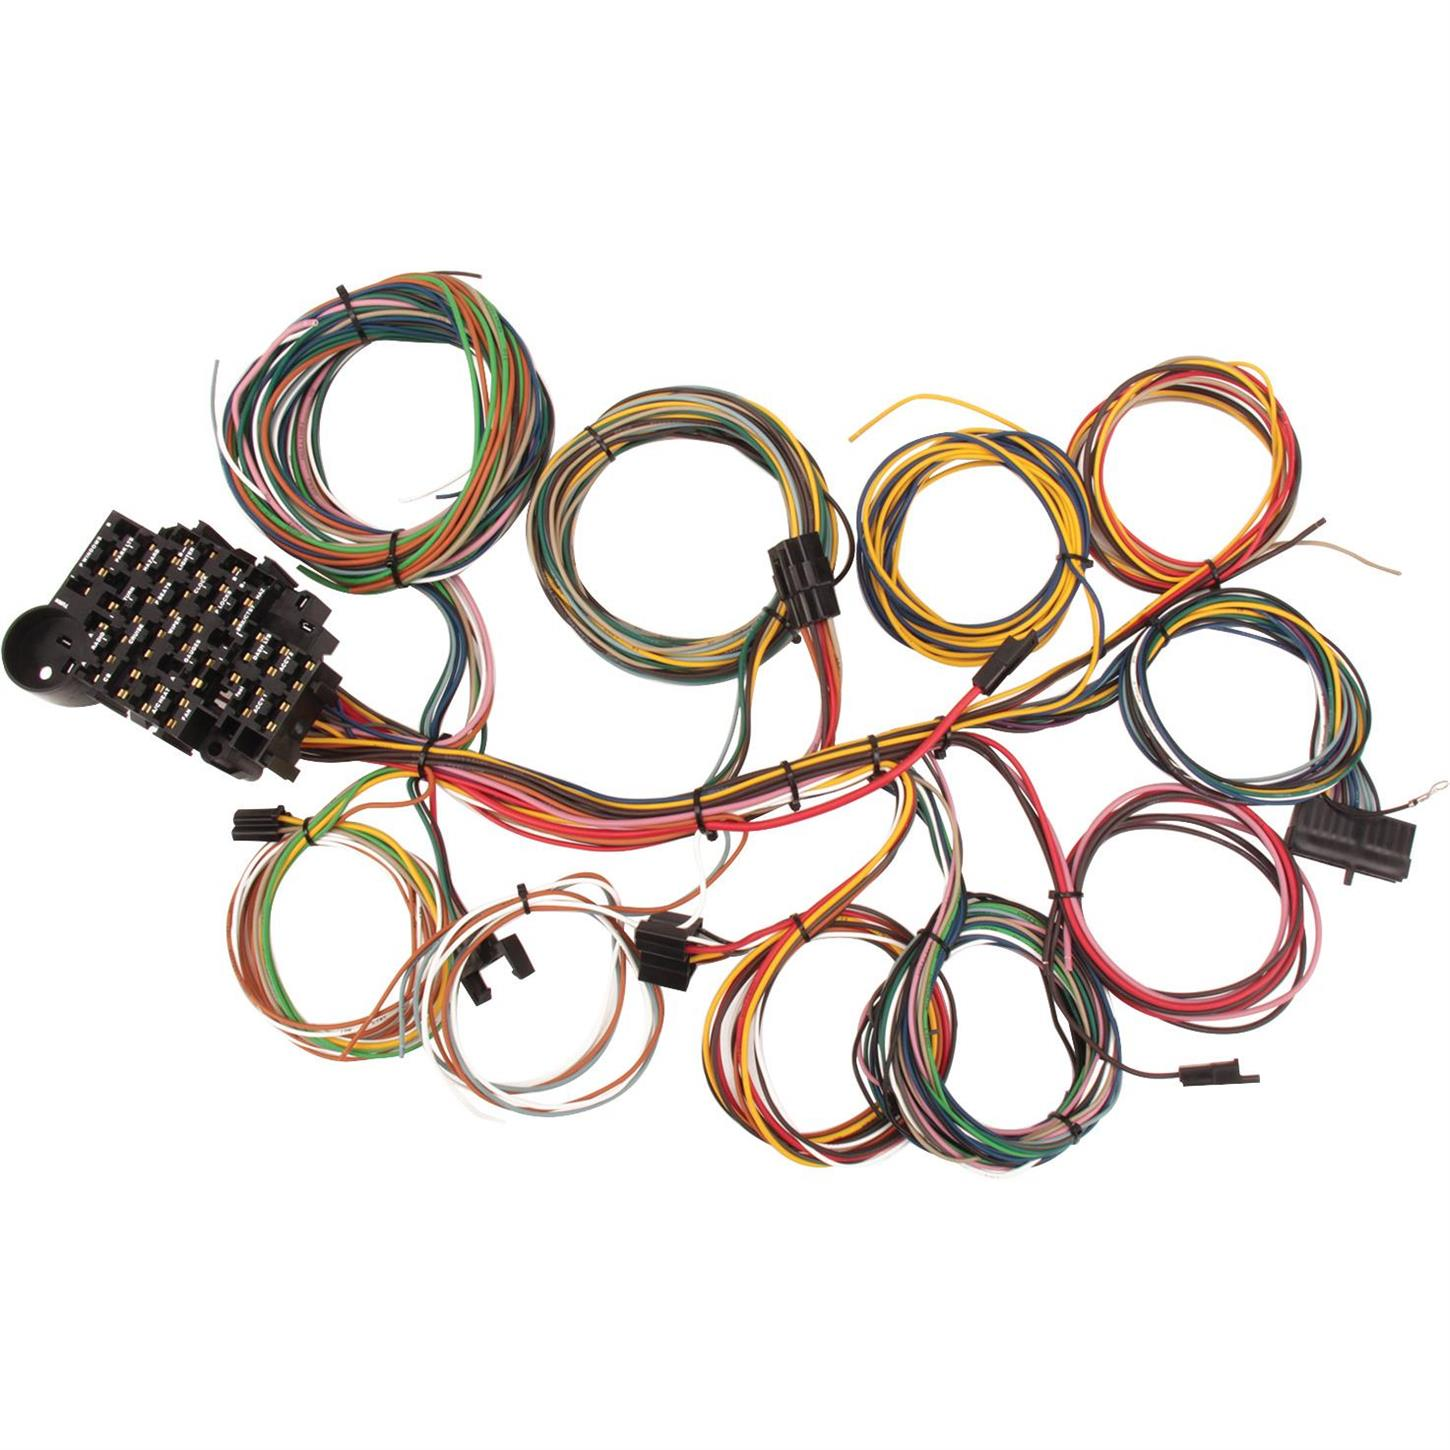 91064022_L1450_4a5a9e43 cdd2 4b2c 9c68 457f296054bd selecting a wiring harness for your street rod  at n-0.co